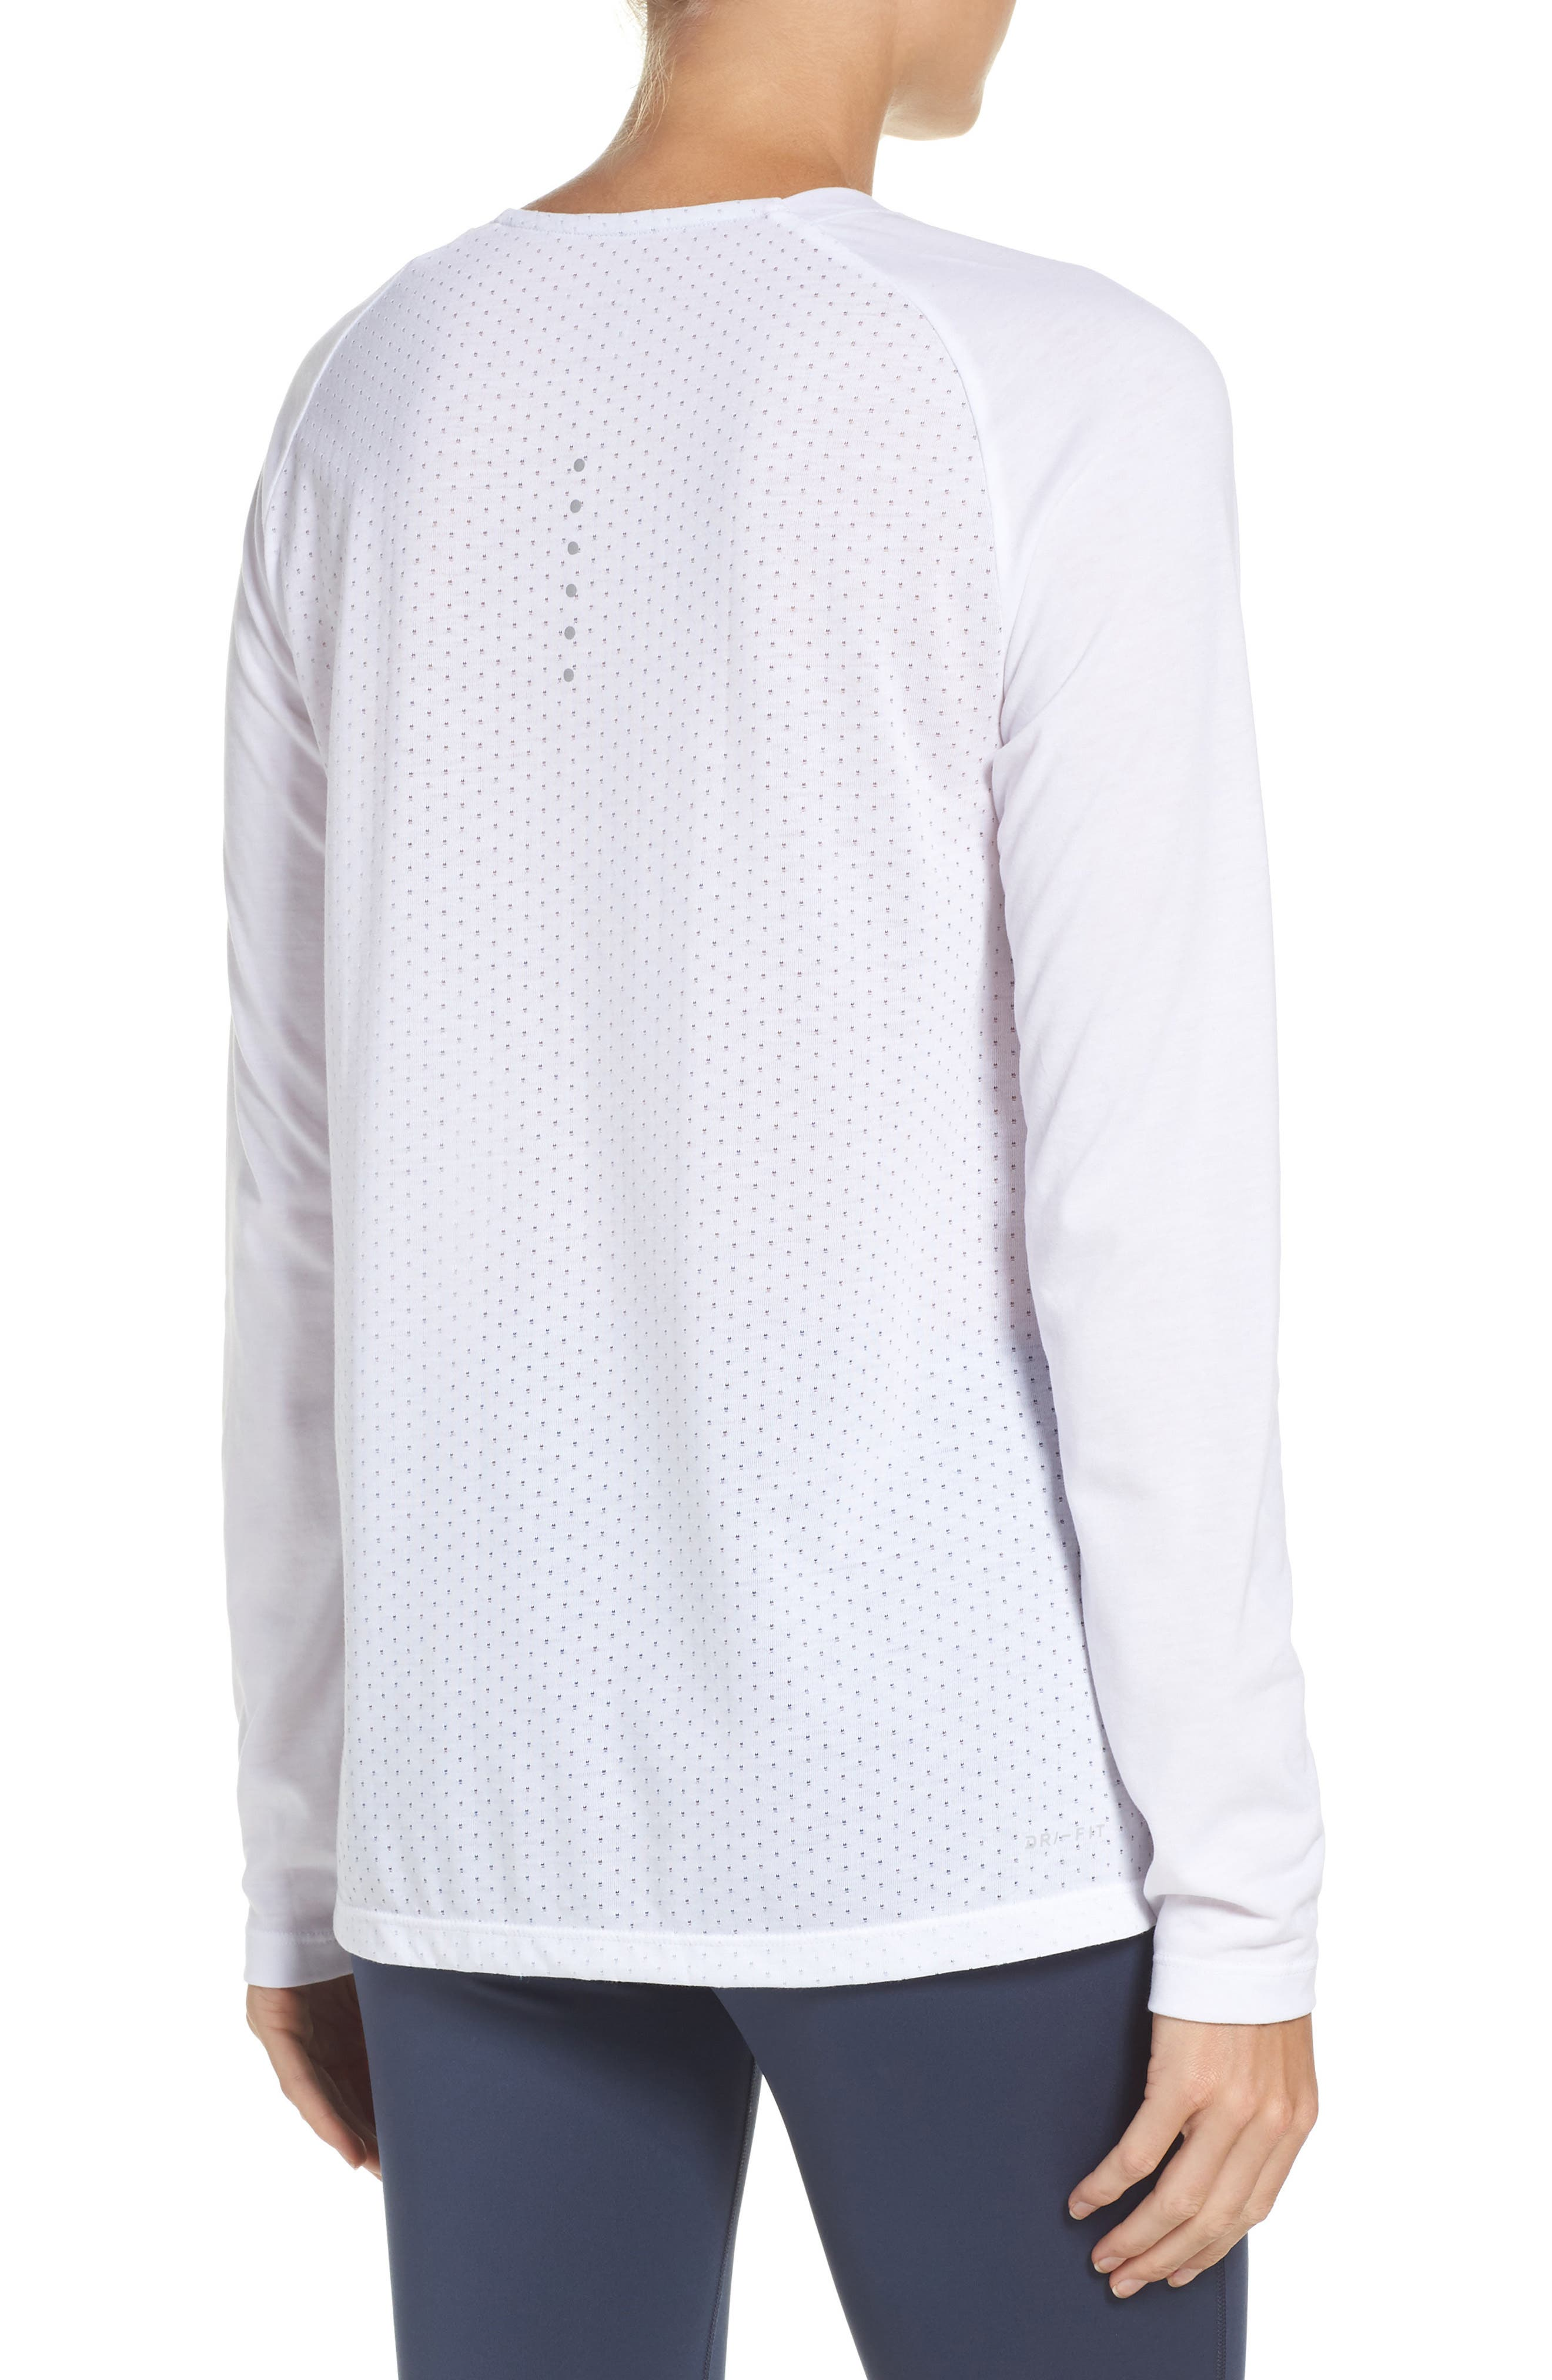 Breathe Tailwind Running Top,                             Alternate thumbnail 2, color,                             White